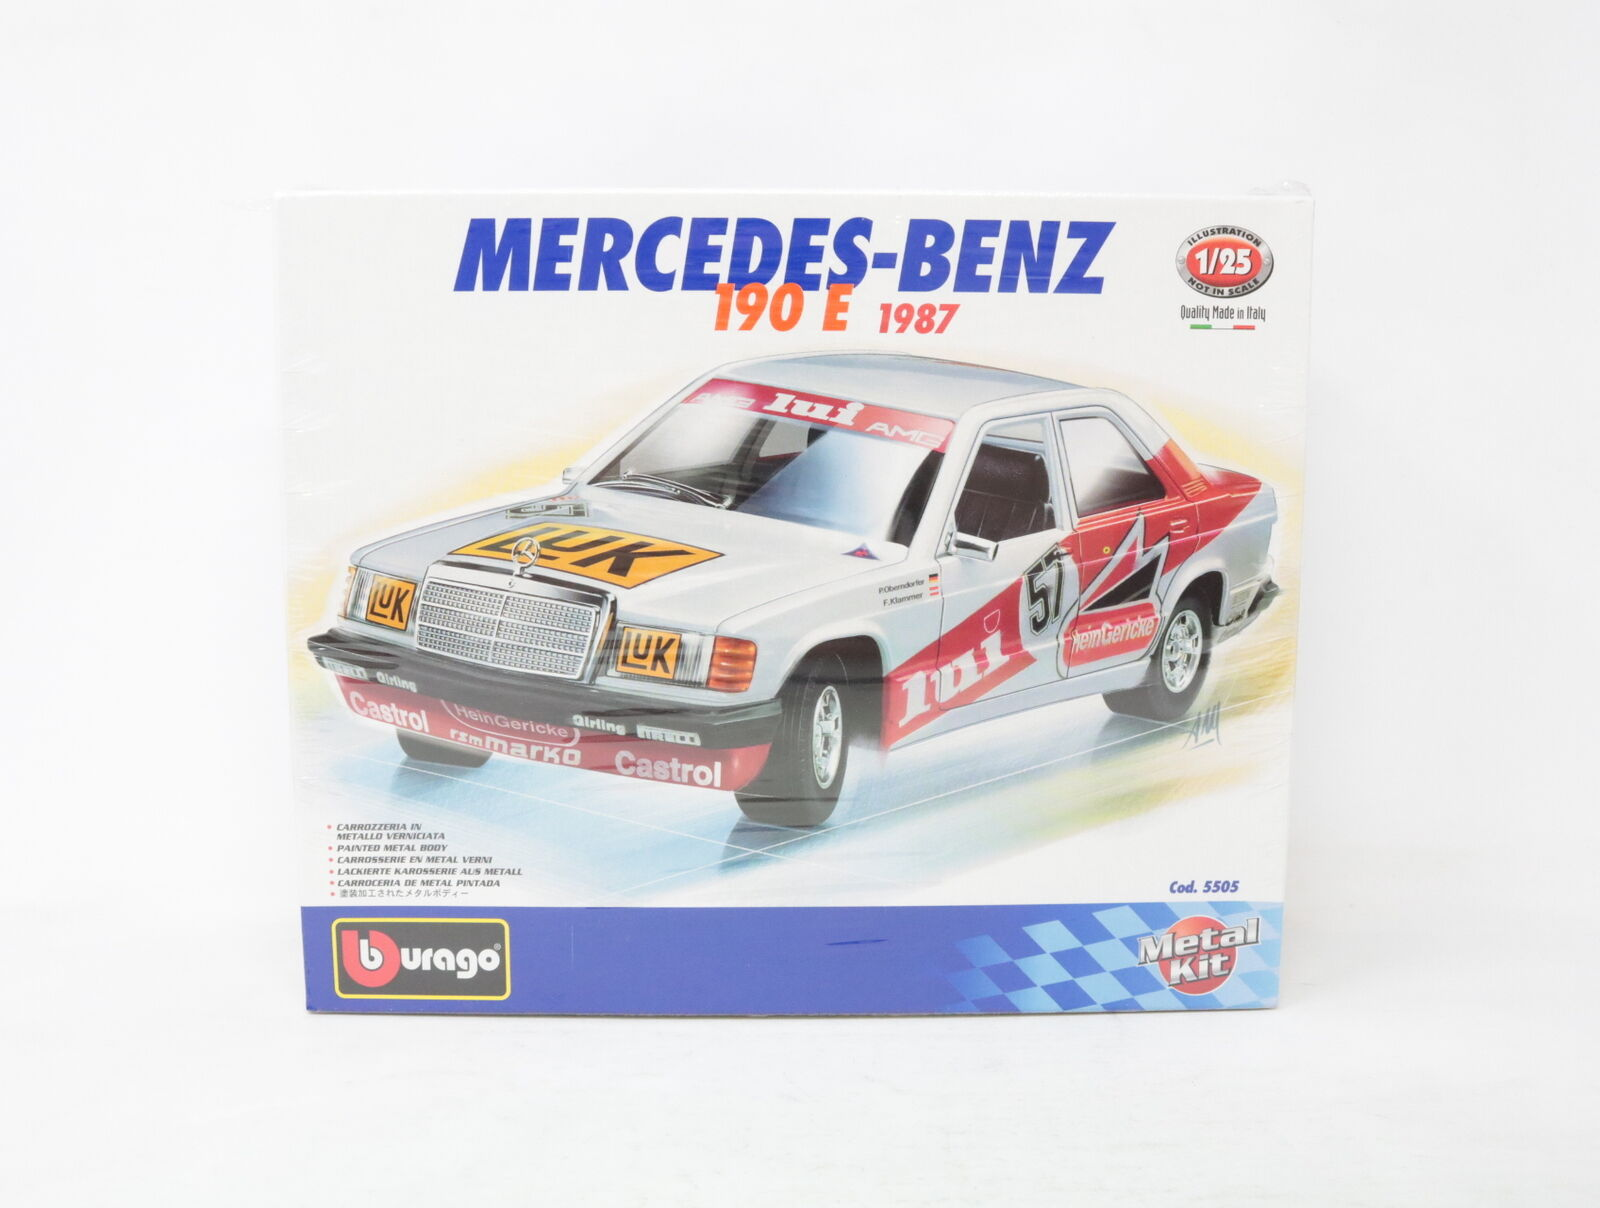 1 25 BBURAGO Metal Kit Mercedes Benz 190e COD. 5505 [ye-020]